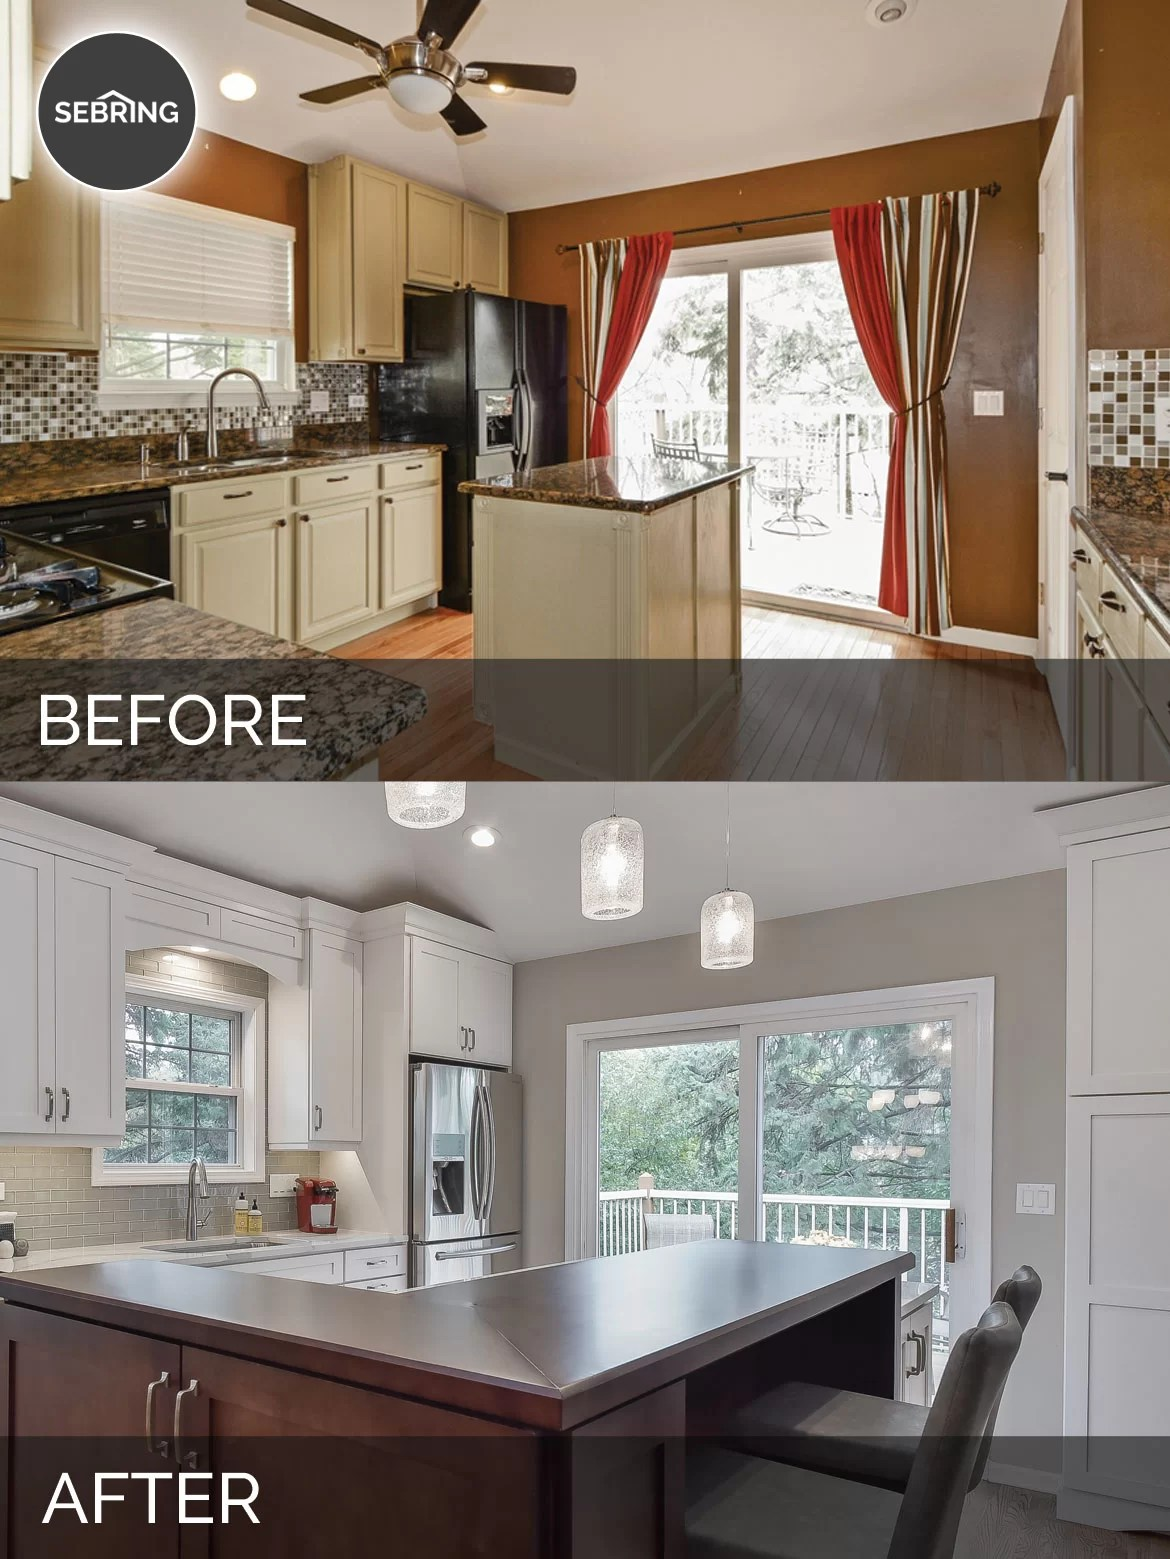 Bill  Carols Kitchen Before  After Pictures  Home Remodeling Contractors  Sebring Design Build